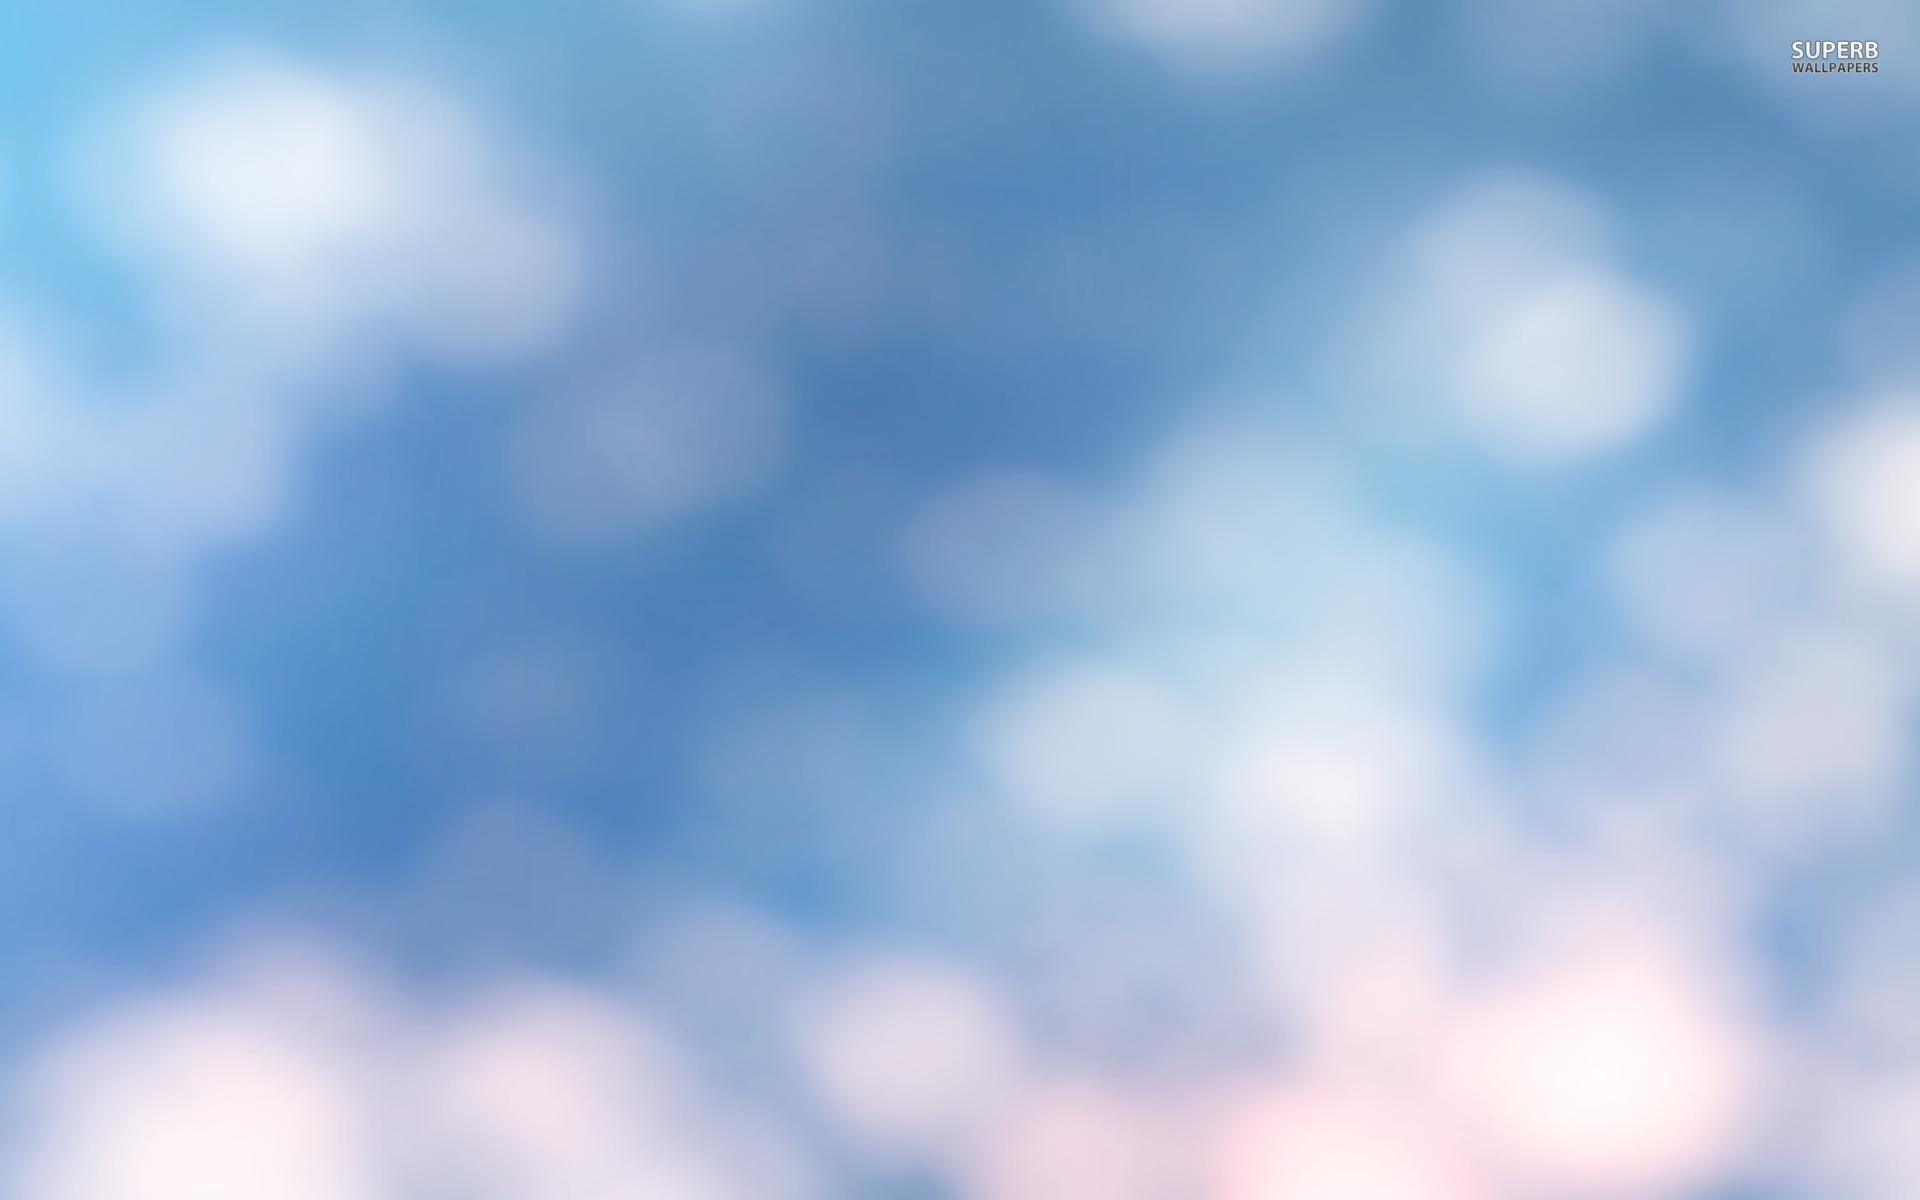 Free Blurred Backgrounds for Your Projects Inspirationfeed